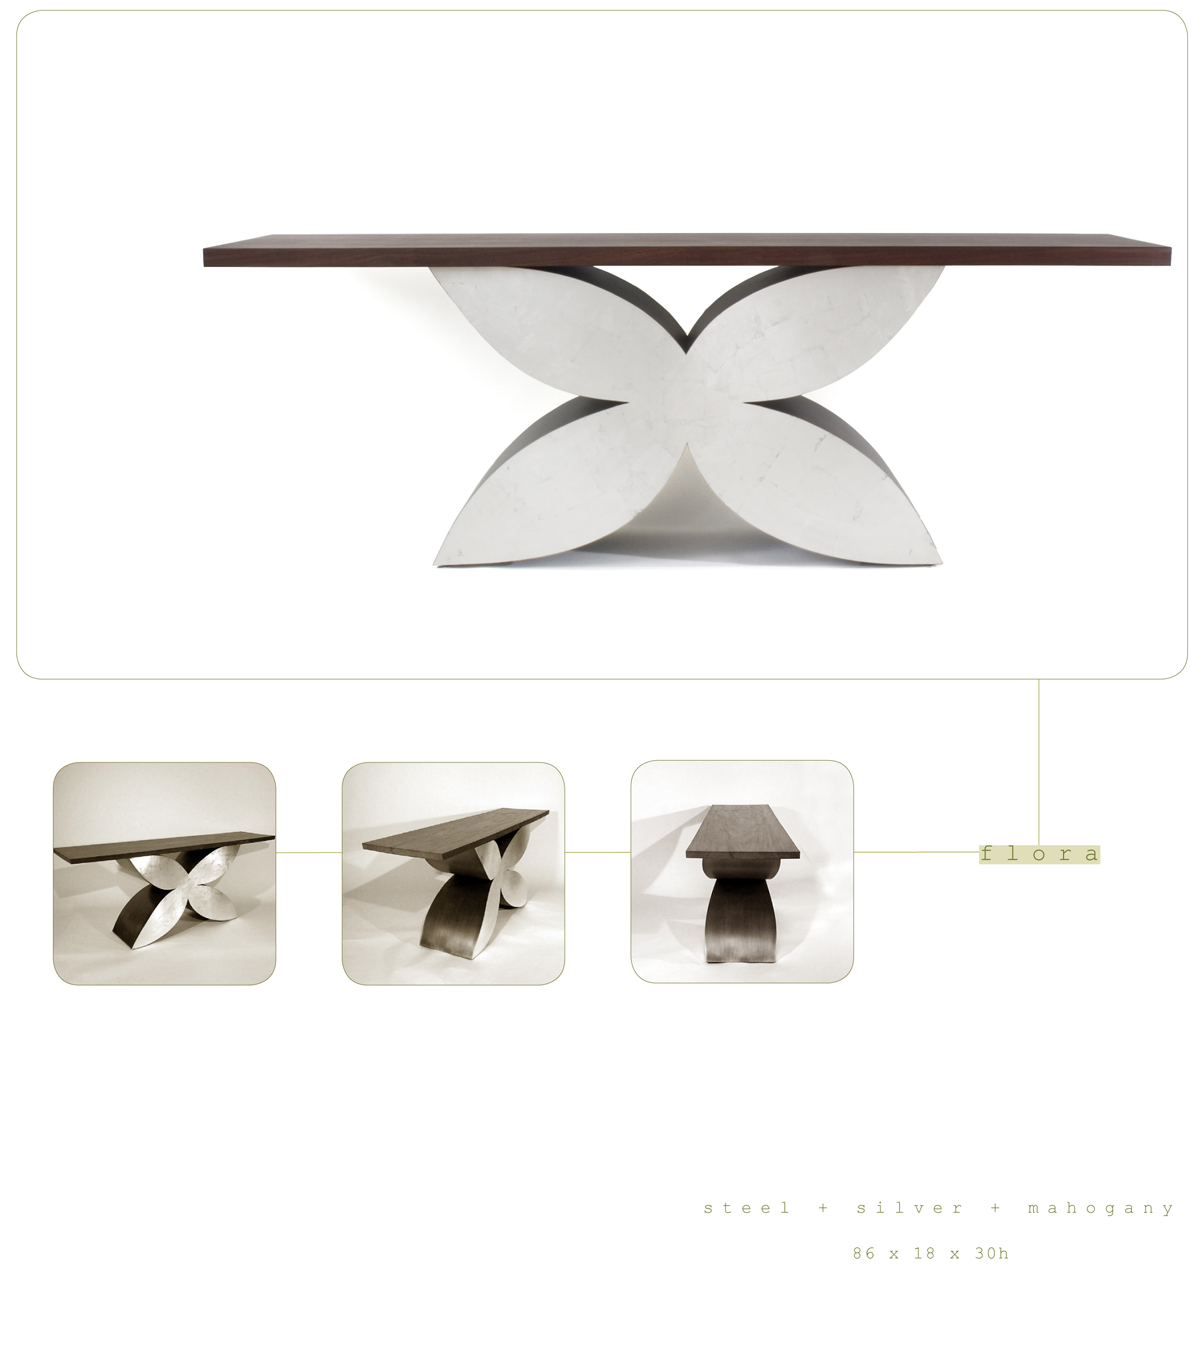 Flora is a contemporary console made out of steel, silver and mahogany 86 x 18 x 30 inches made by Chad Manley Design.